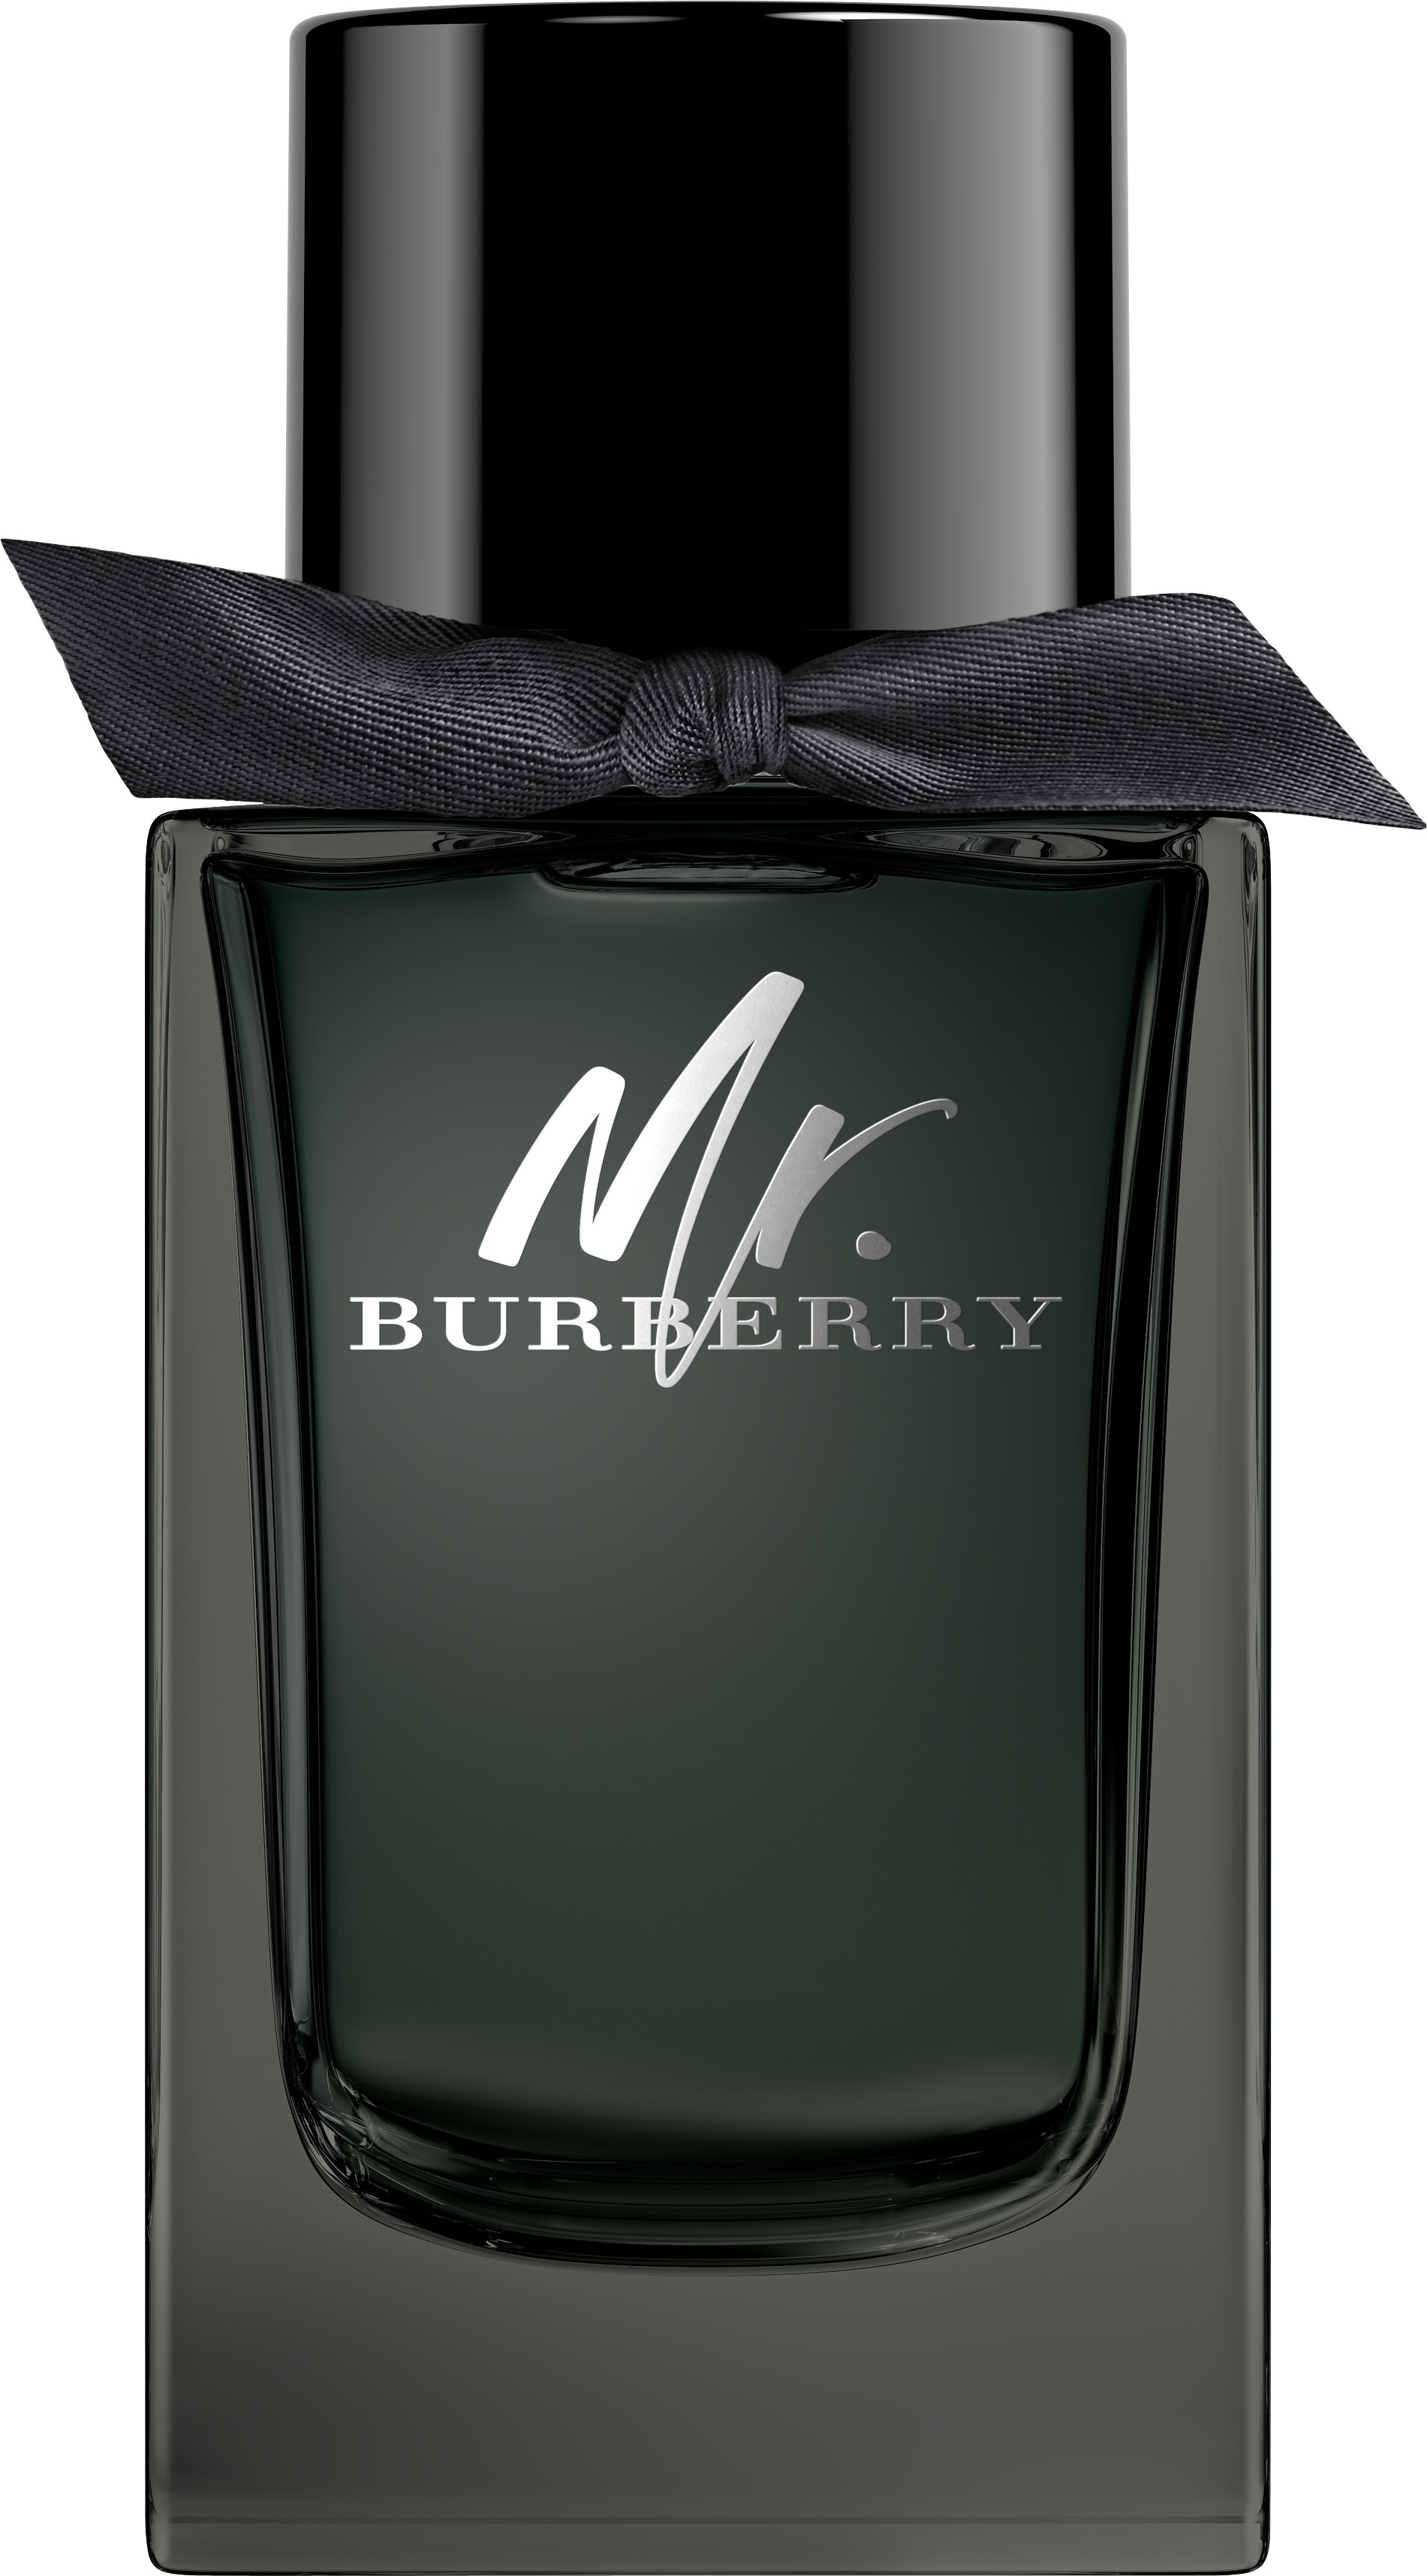 Burberry Mr Burberry Men's Cologne